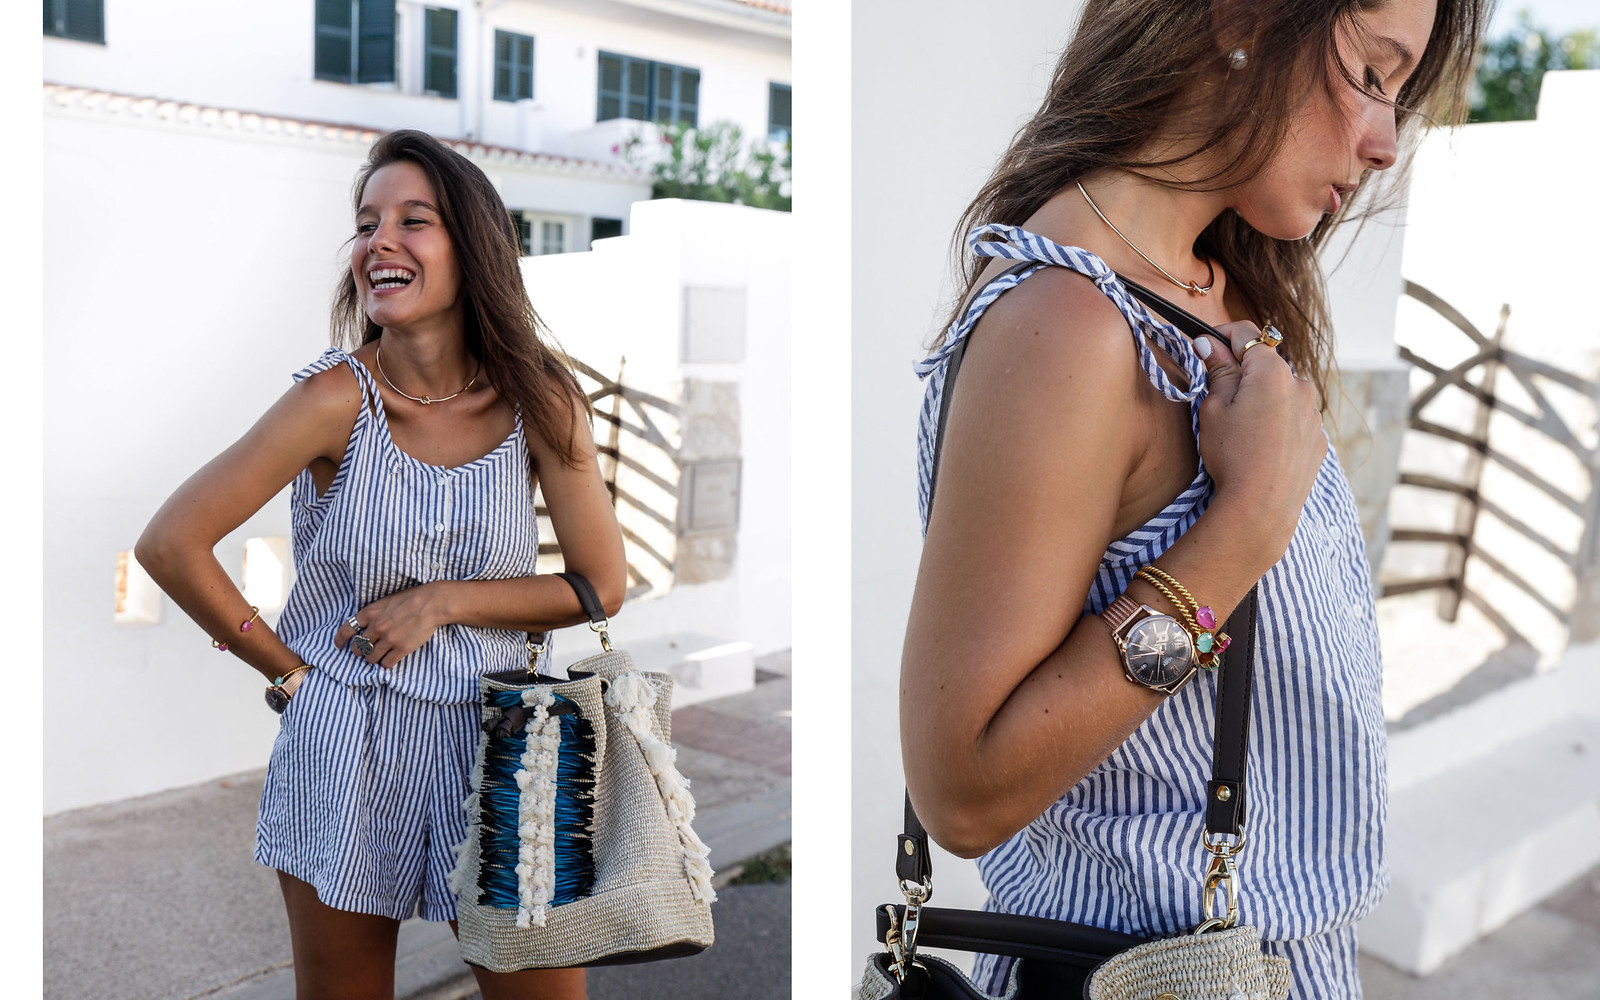 011_Mono_rayas_marineras_casual_outfit_theguestgirl_bolso_boho_via_email_pieces_style_the_guest_girl_influencer_menorca_minorca_barcelona_spain_fashion_blogger